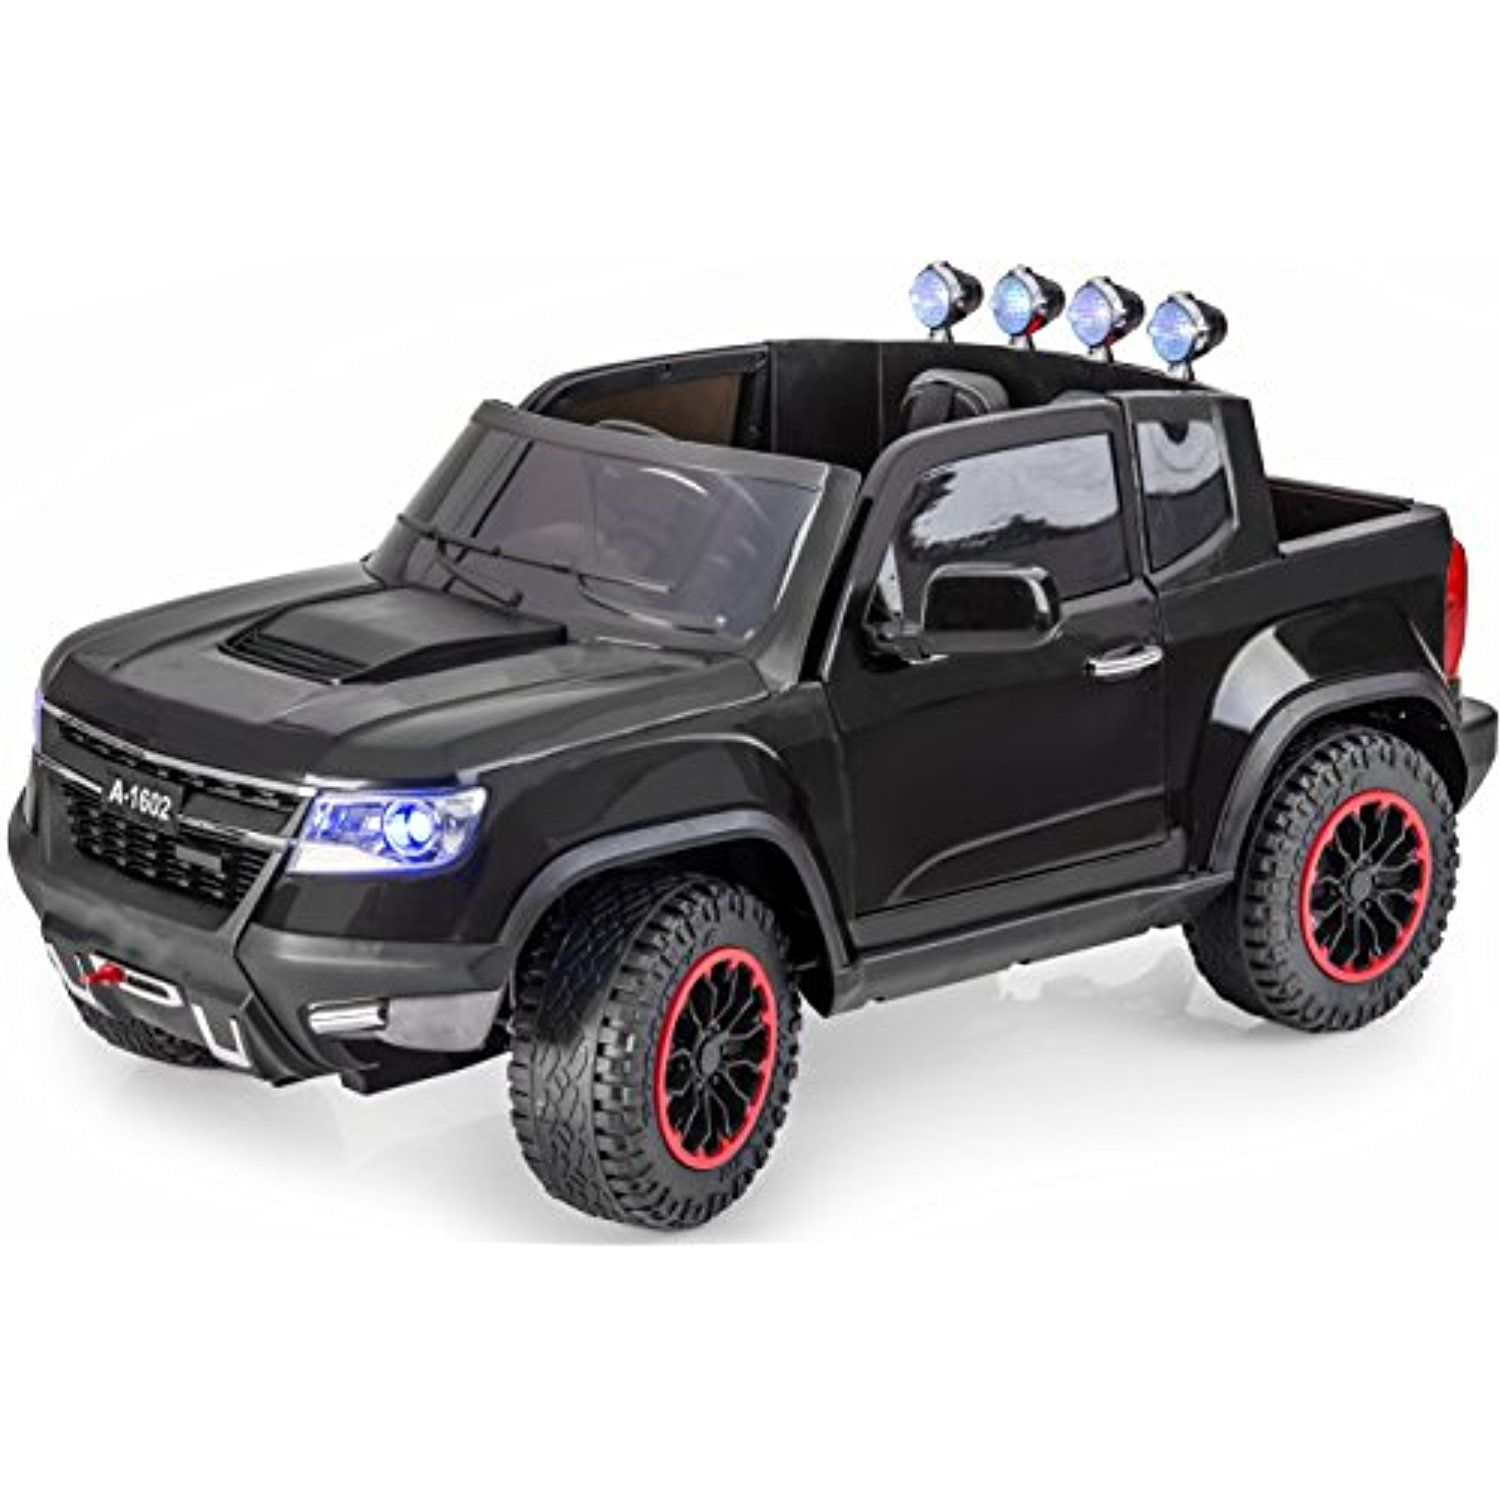 Exclusive Edition 4x4 Big GM Chevy Heavy Duty Style Kids Ride on